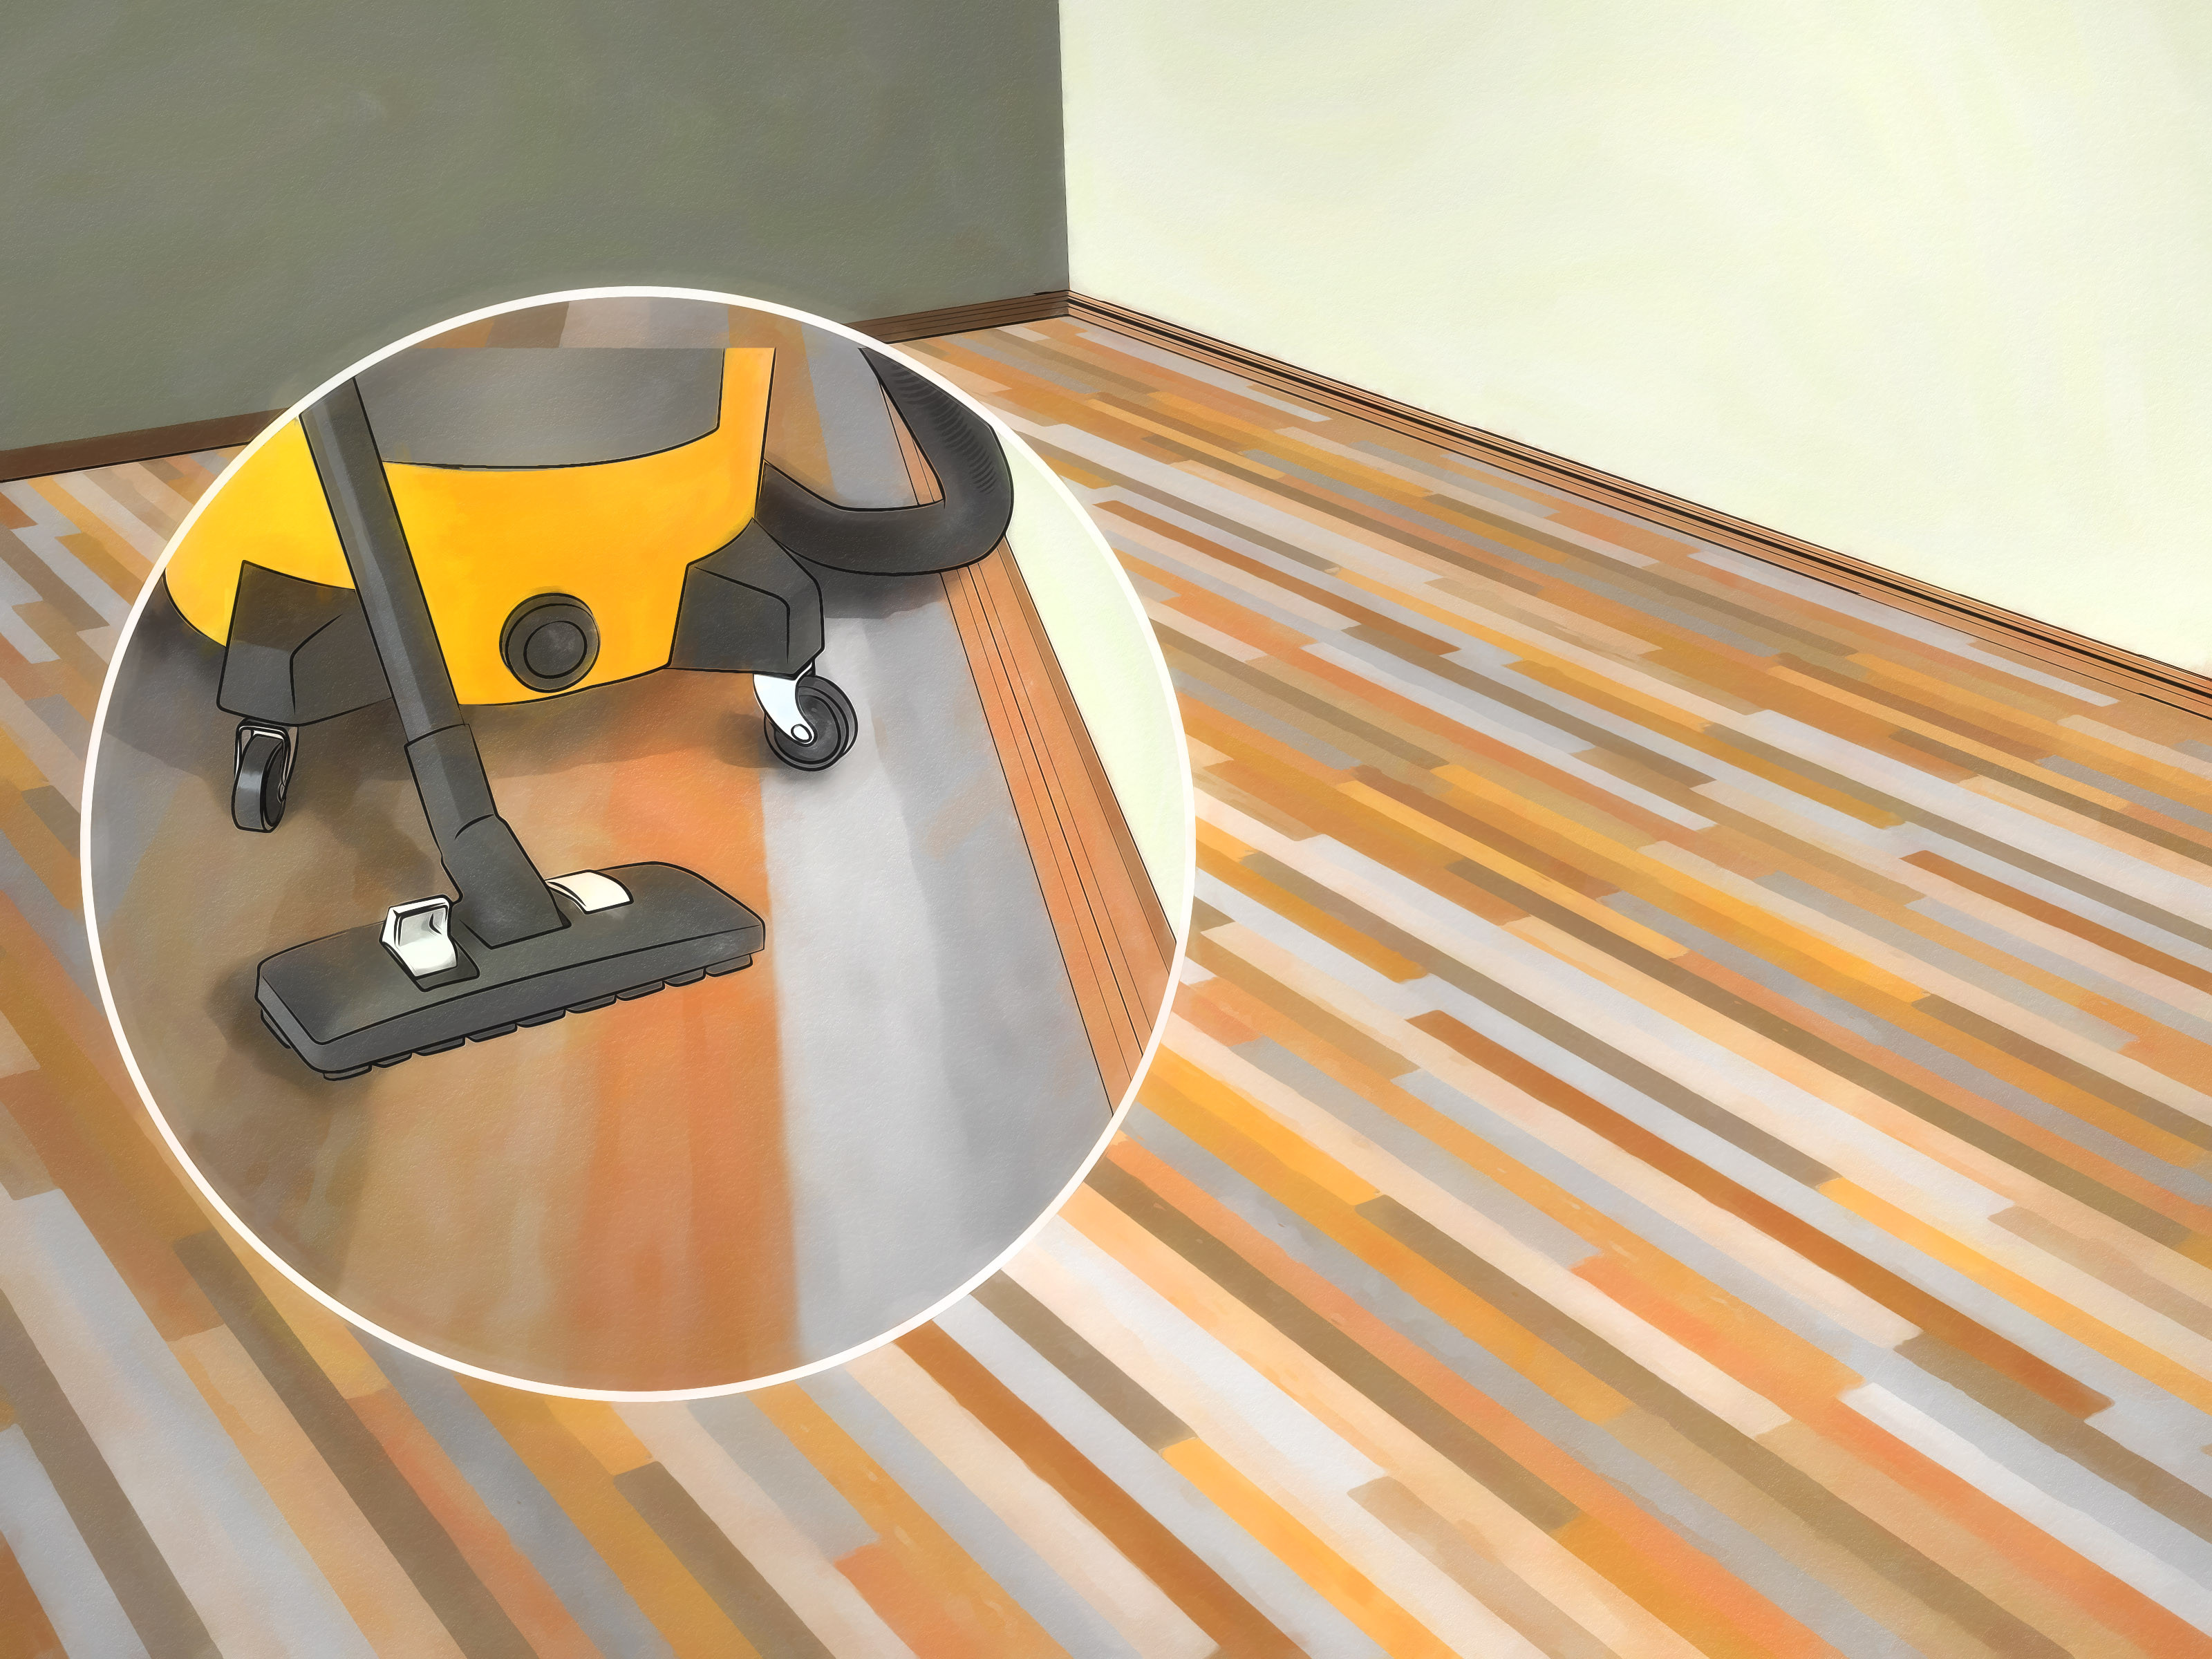 hardwood floor finishes pictures of how to sand hardwood floors with pictures wikihow for sand hardwood floors step 22